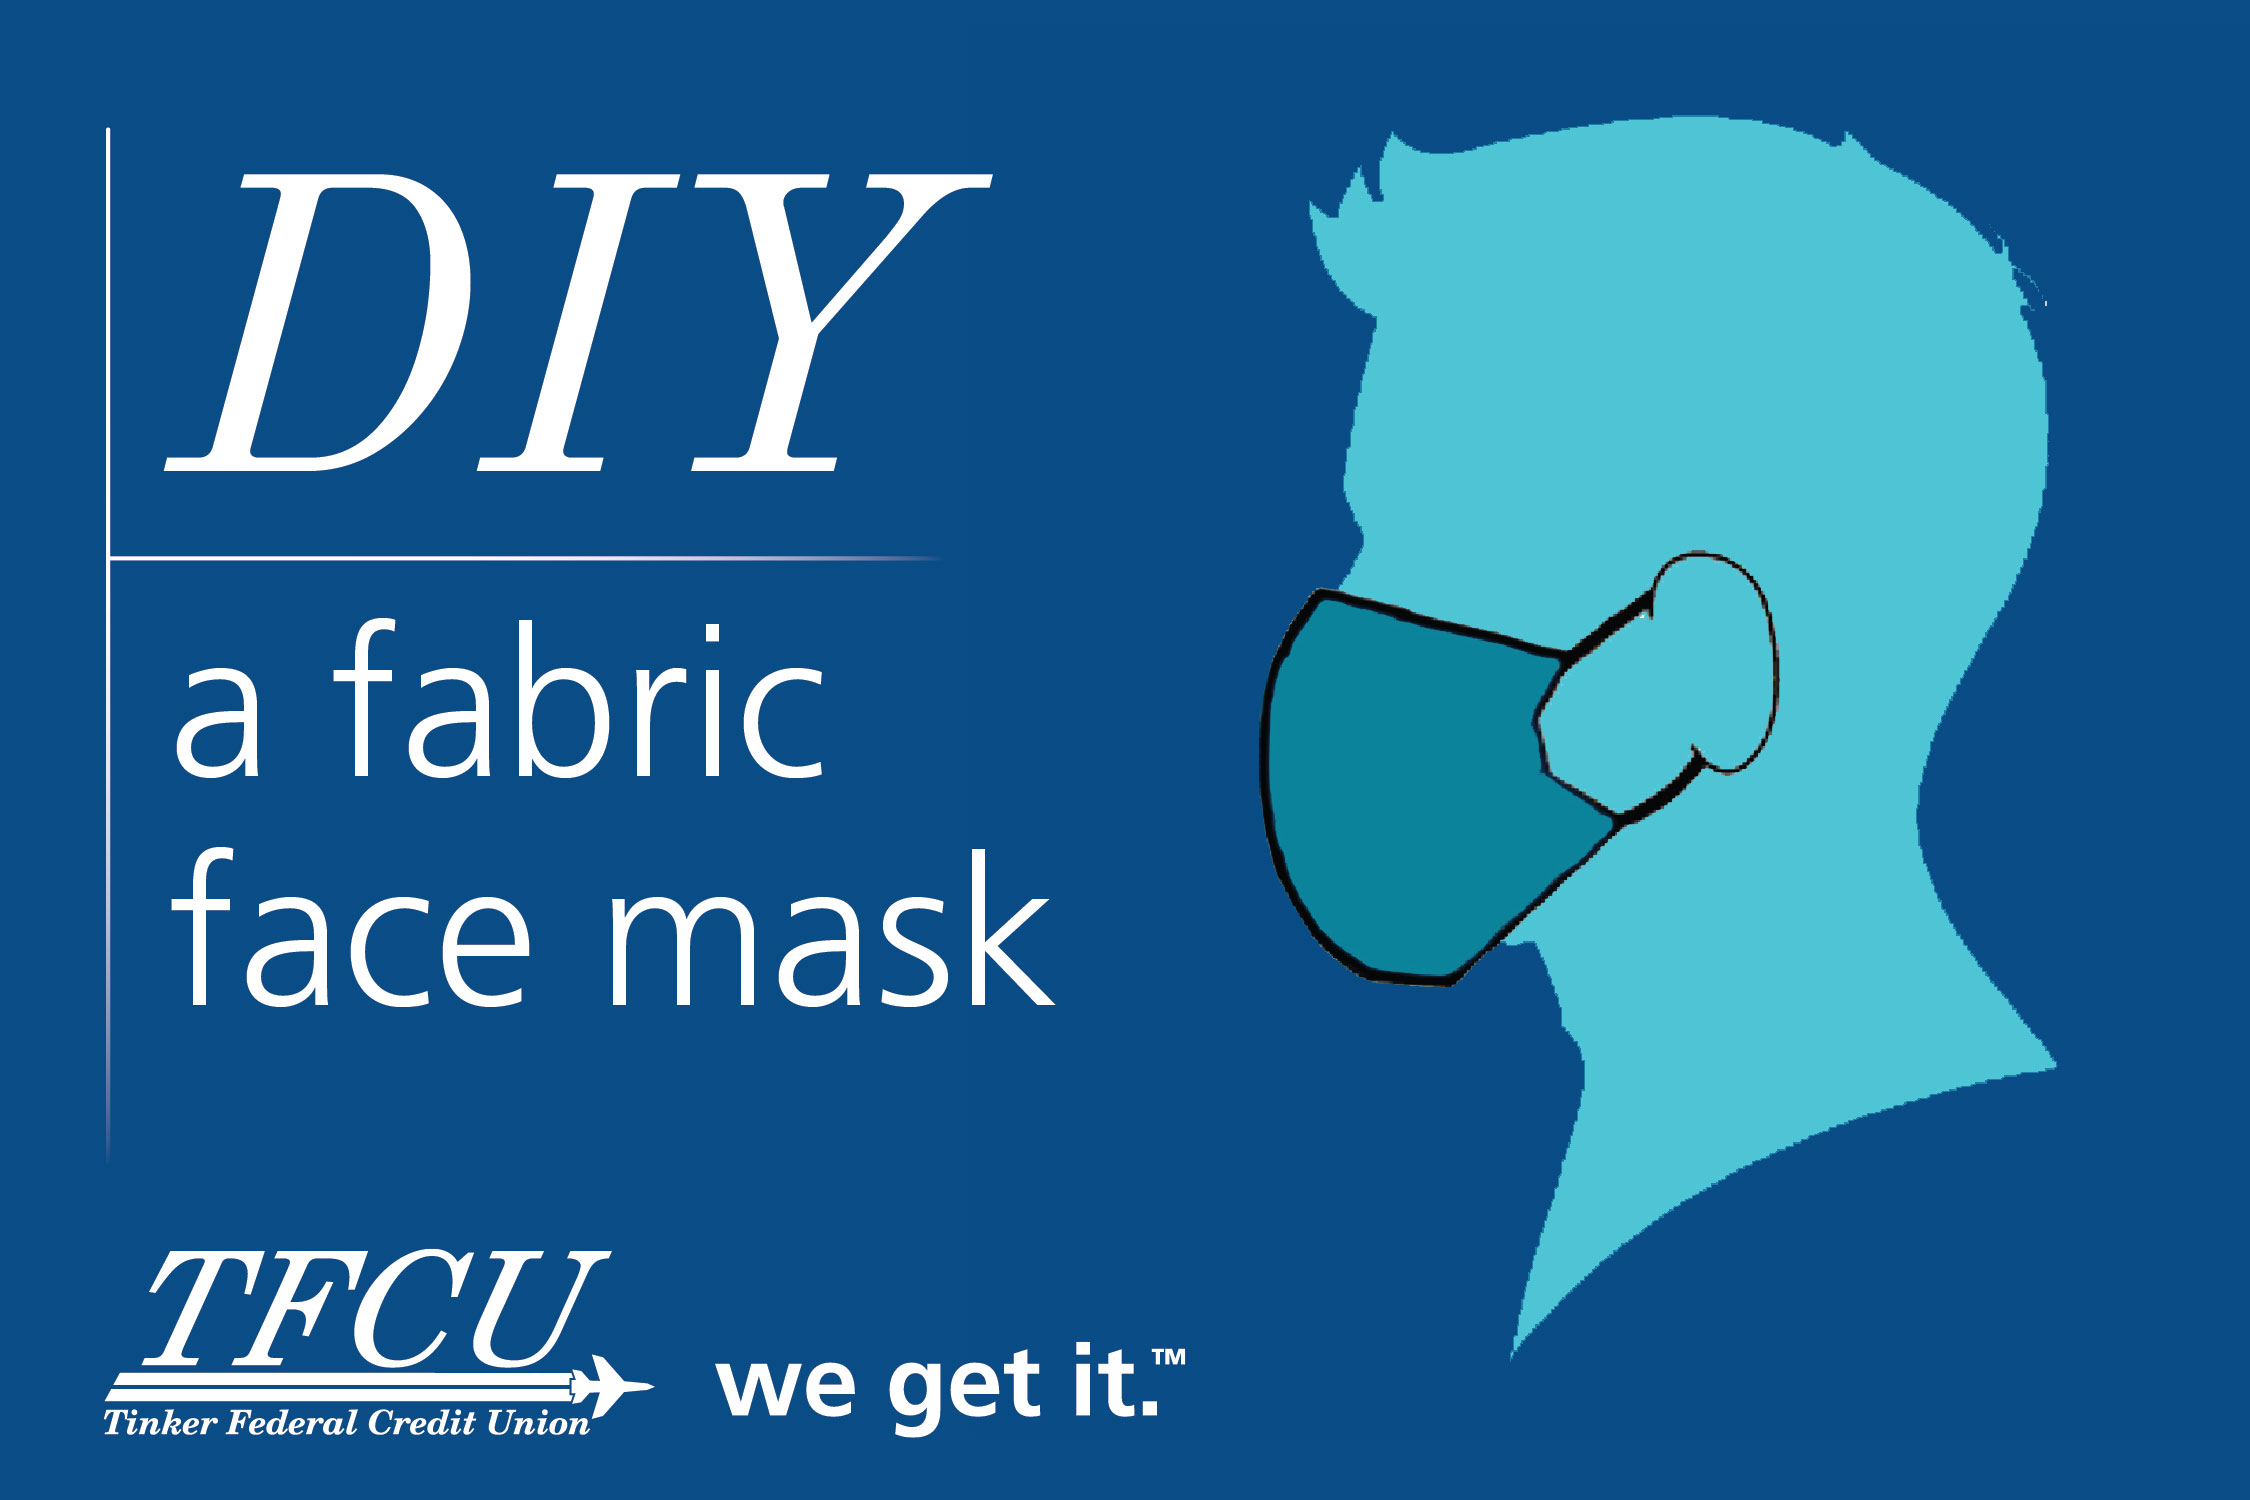 DIY a fabric face mask